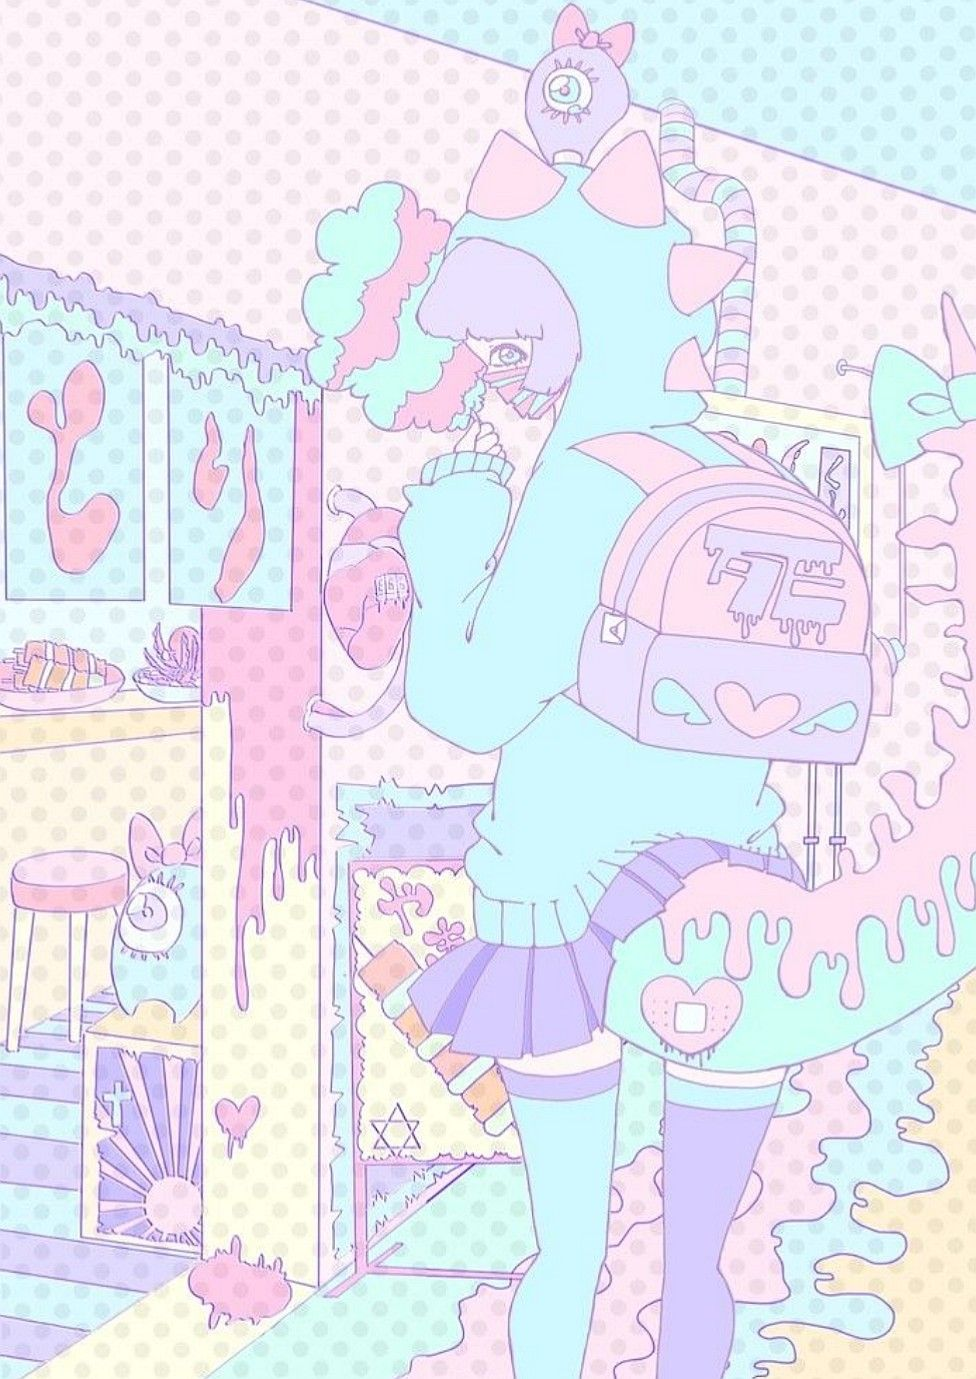 Aesthetic anime style doodle kawaii pastel cute wallpaper